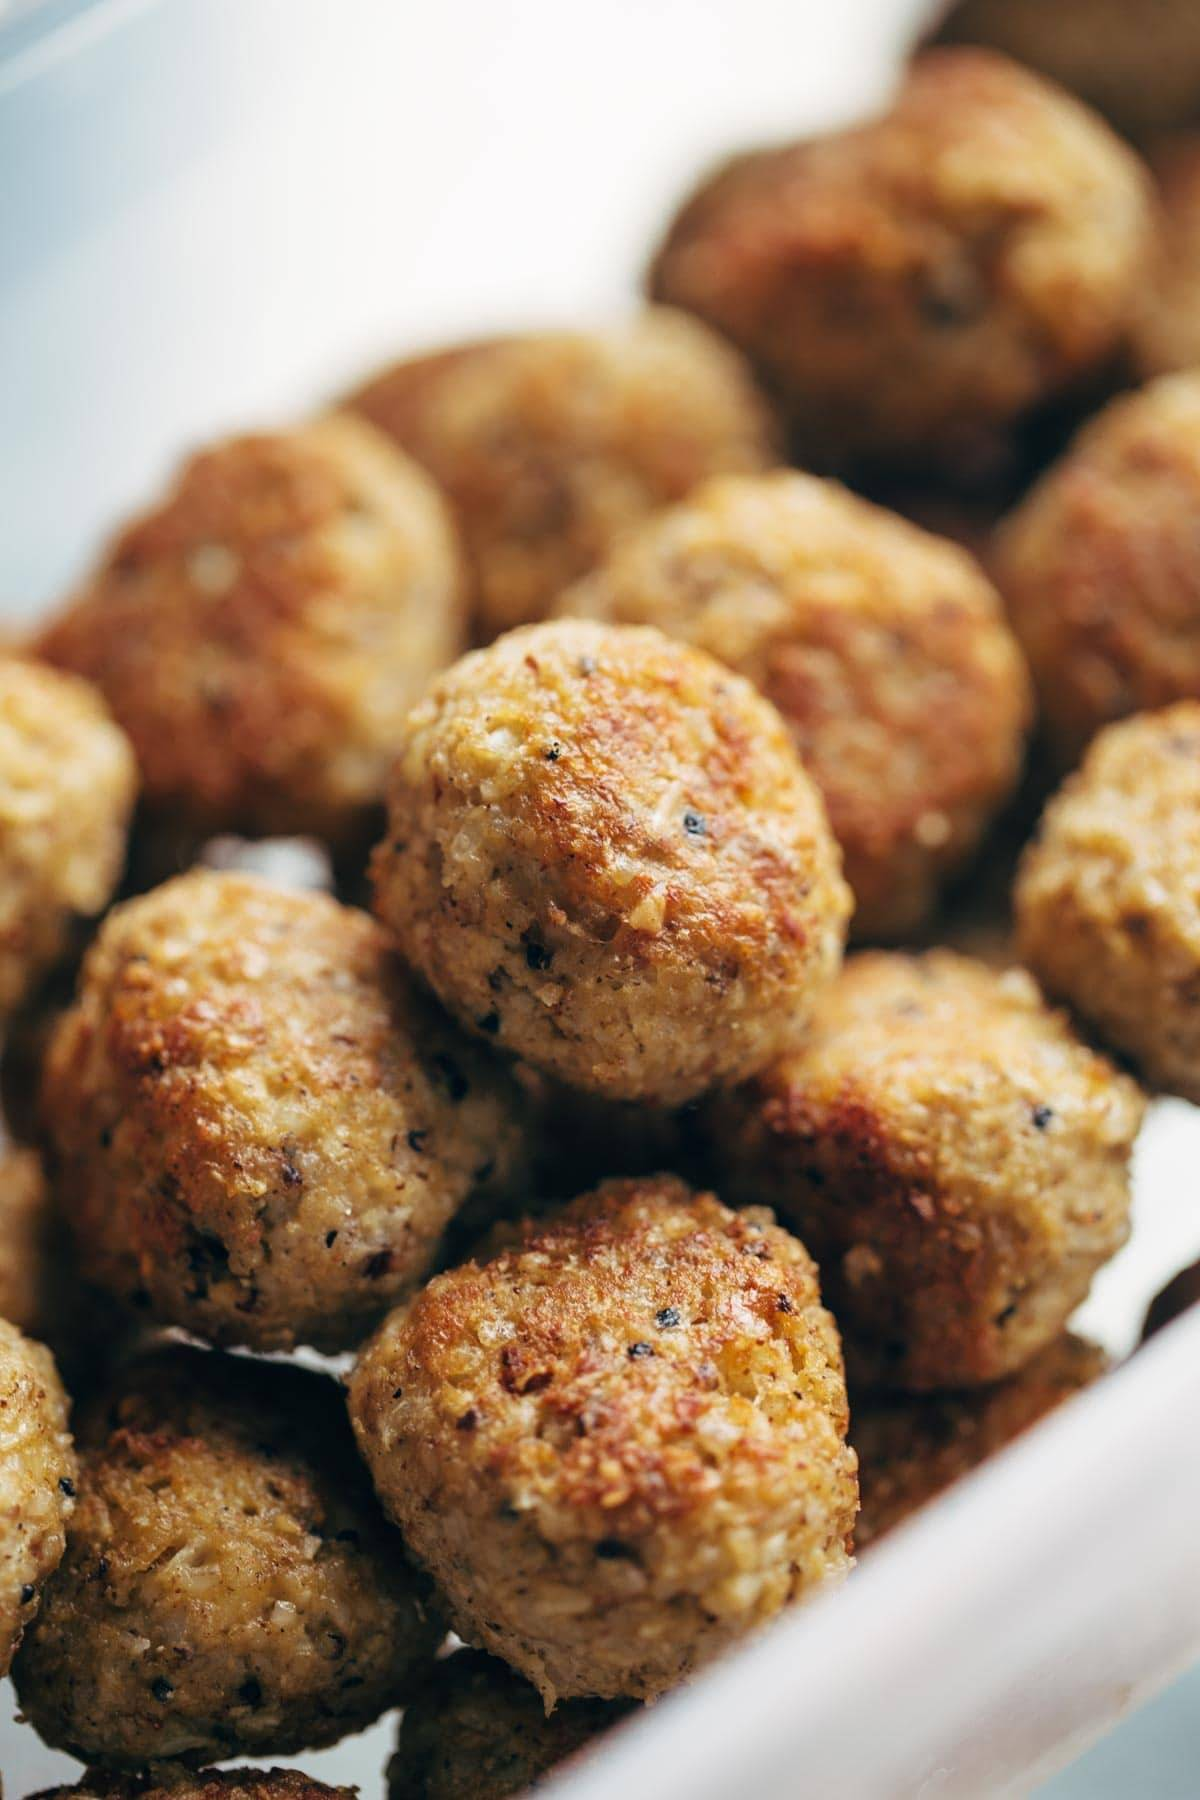 30 Minute Vegetarian Meatballs: made with cauliflower, quinoa, brown rice, garlic, and spices. SUPER versatile - recipe makes a huge batch so you can stockpile them in your freezer for easy meals later!   pinchofyum.com